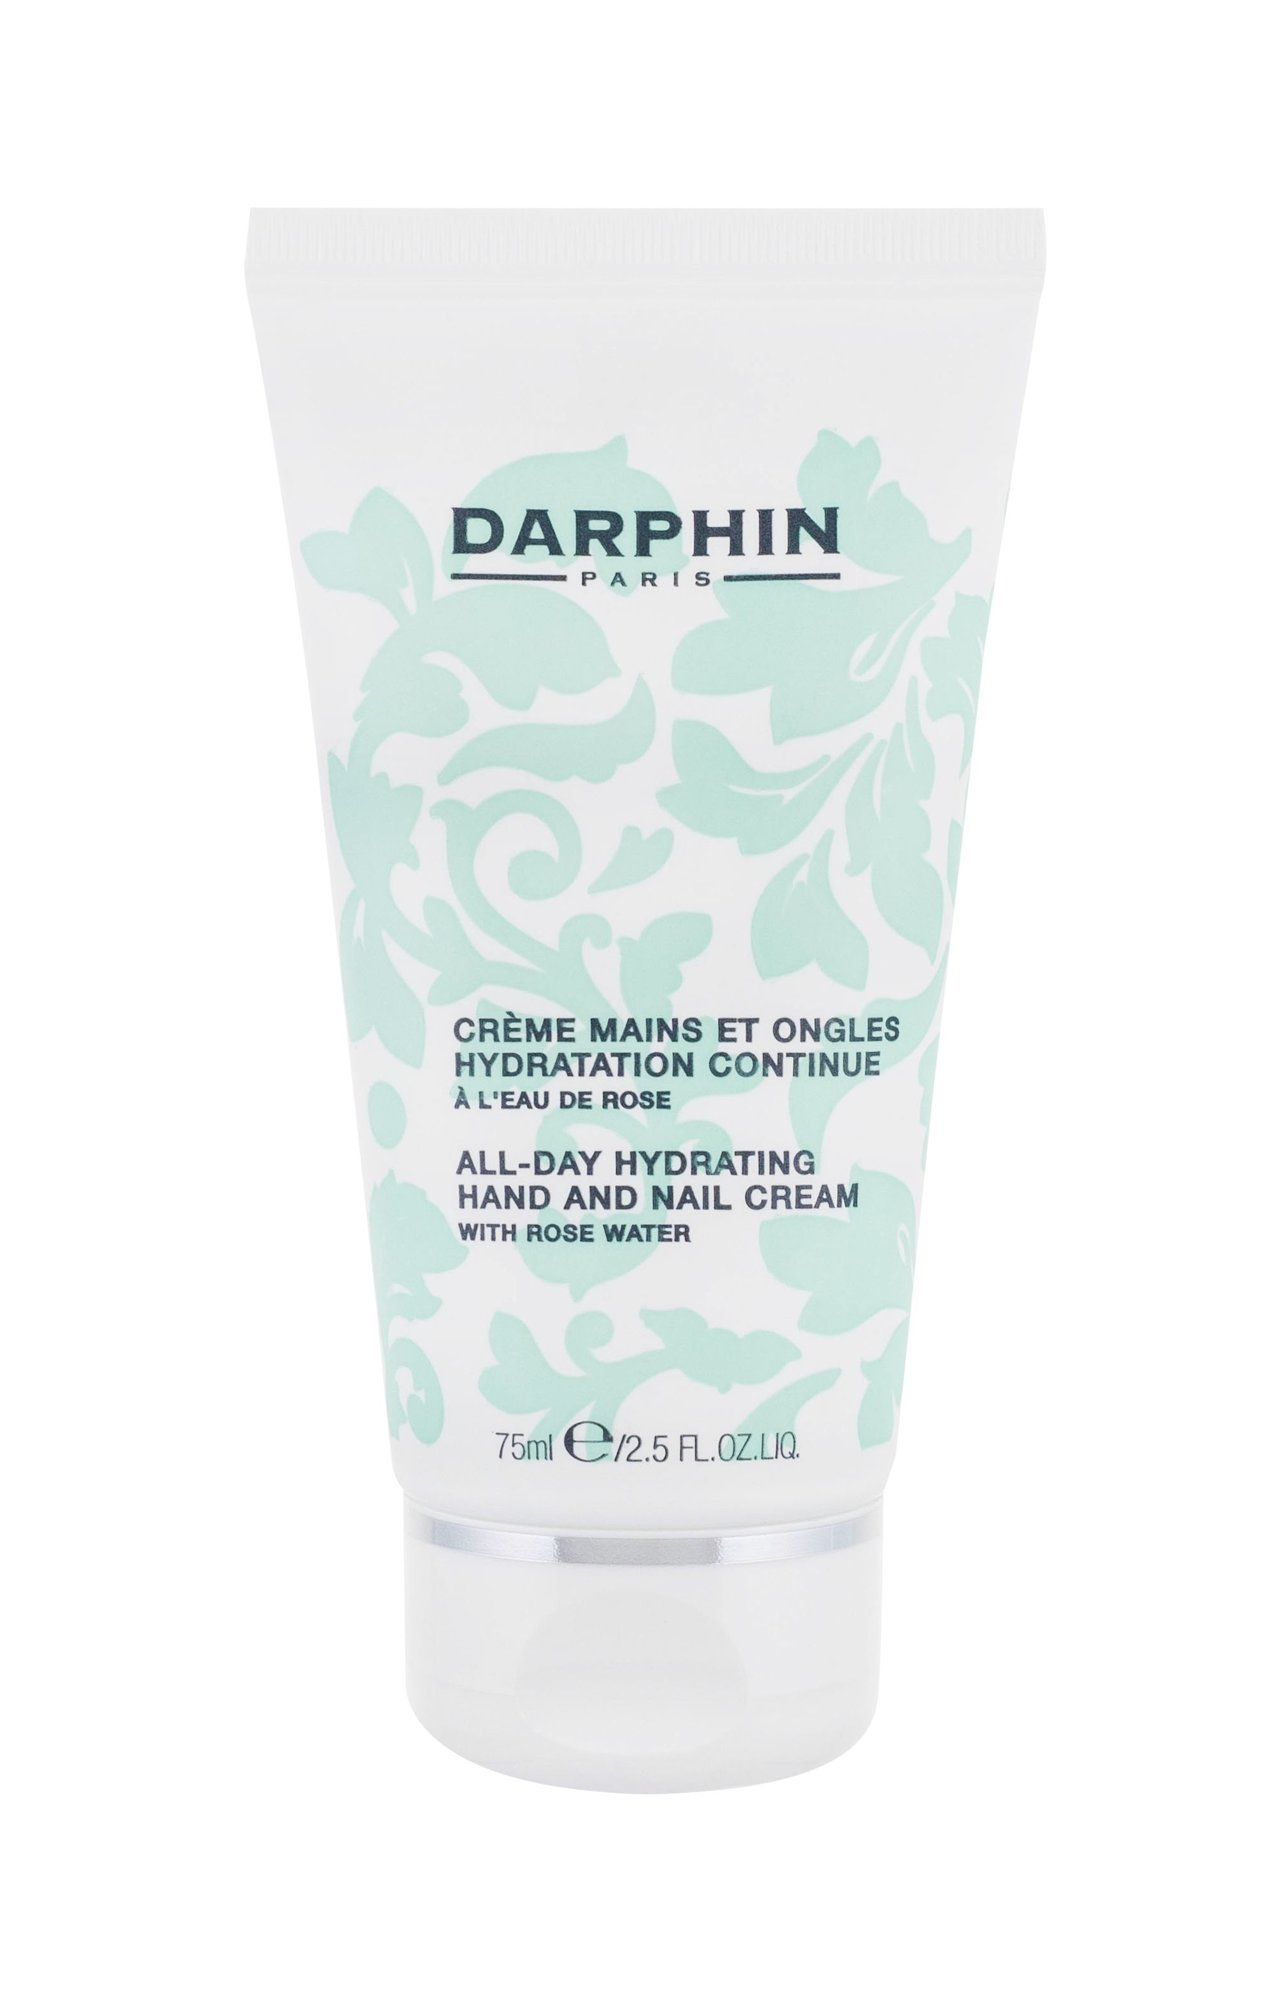 Darphin Body Care Hand Cream 75ml  All-Day Hydrating Hand And Nail Cream